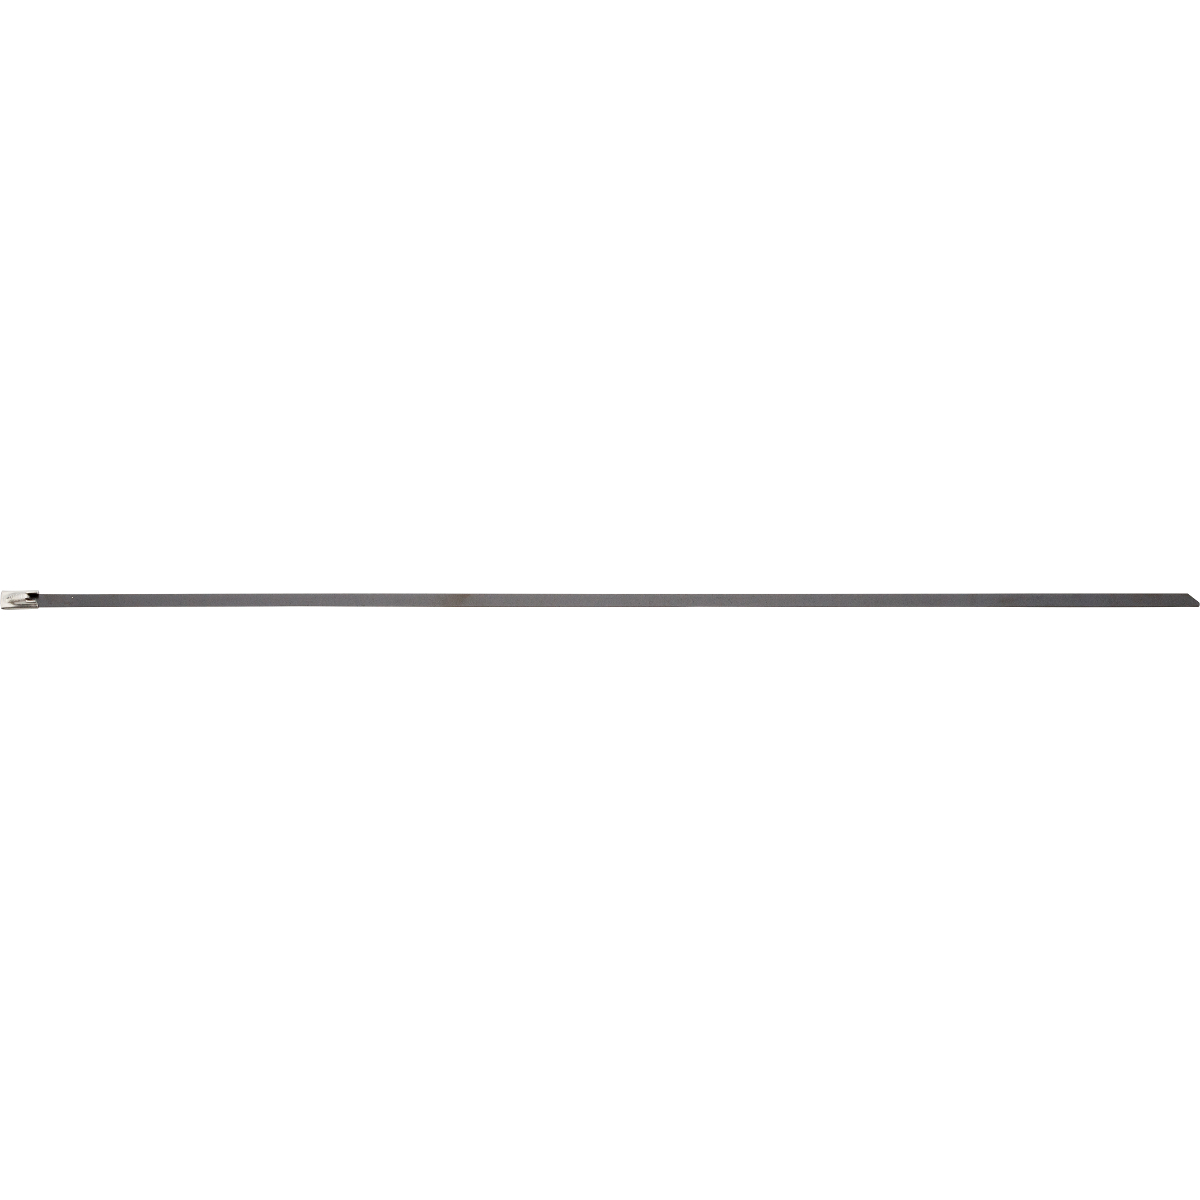 """B7316 STEEL CABLE TIE, 0.181x14.566"""""""